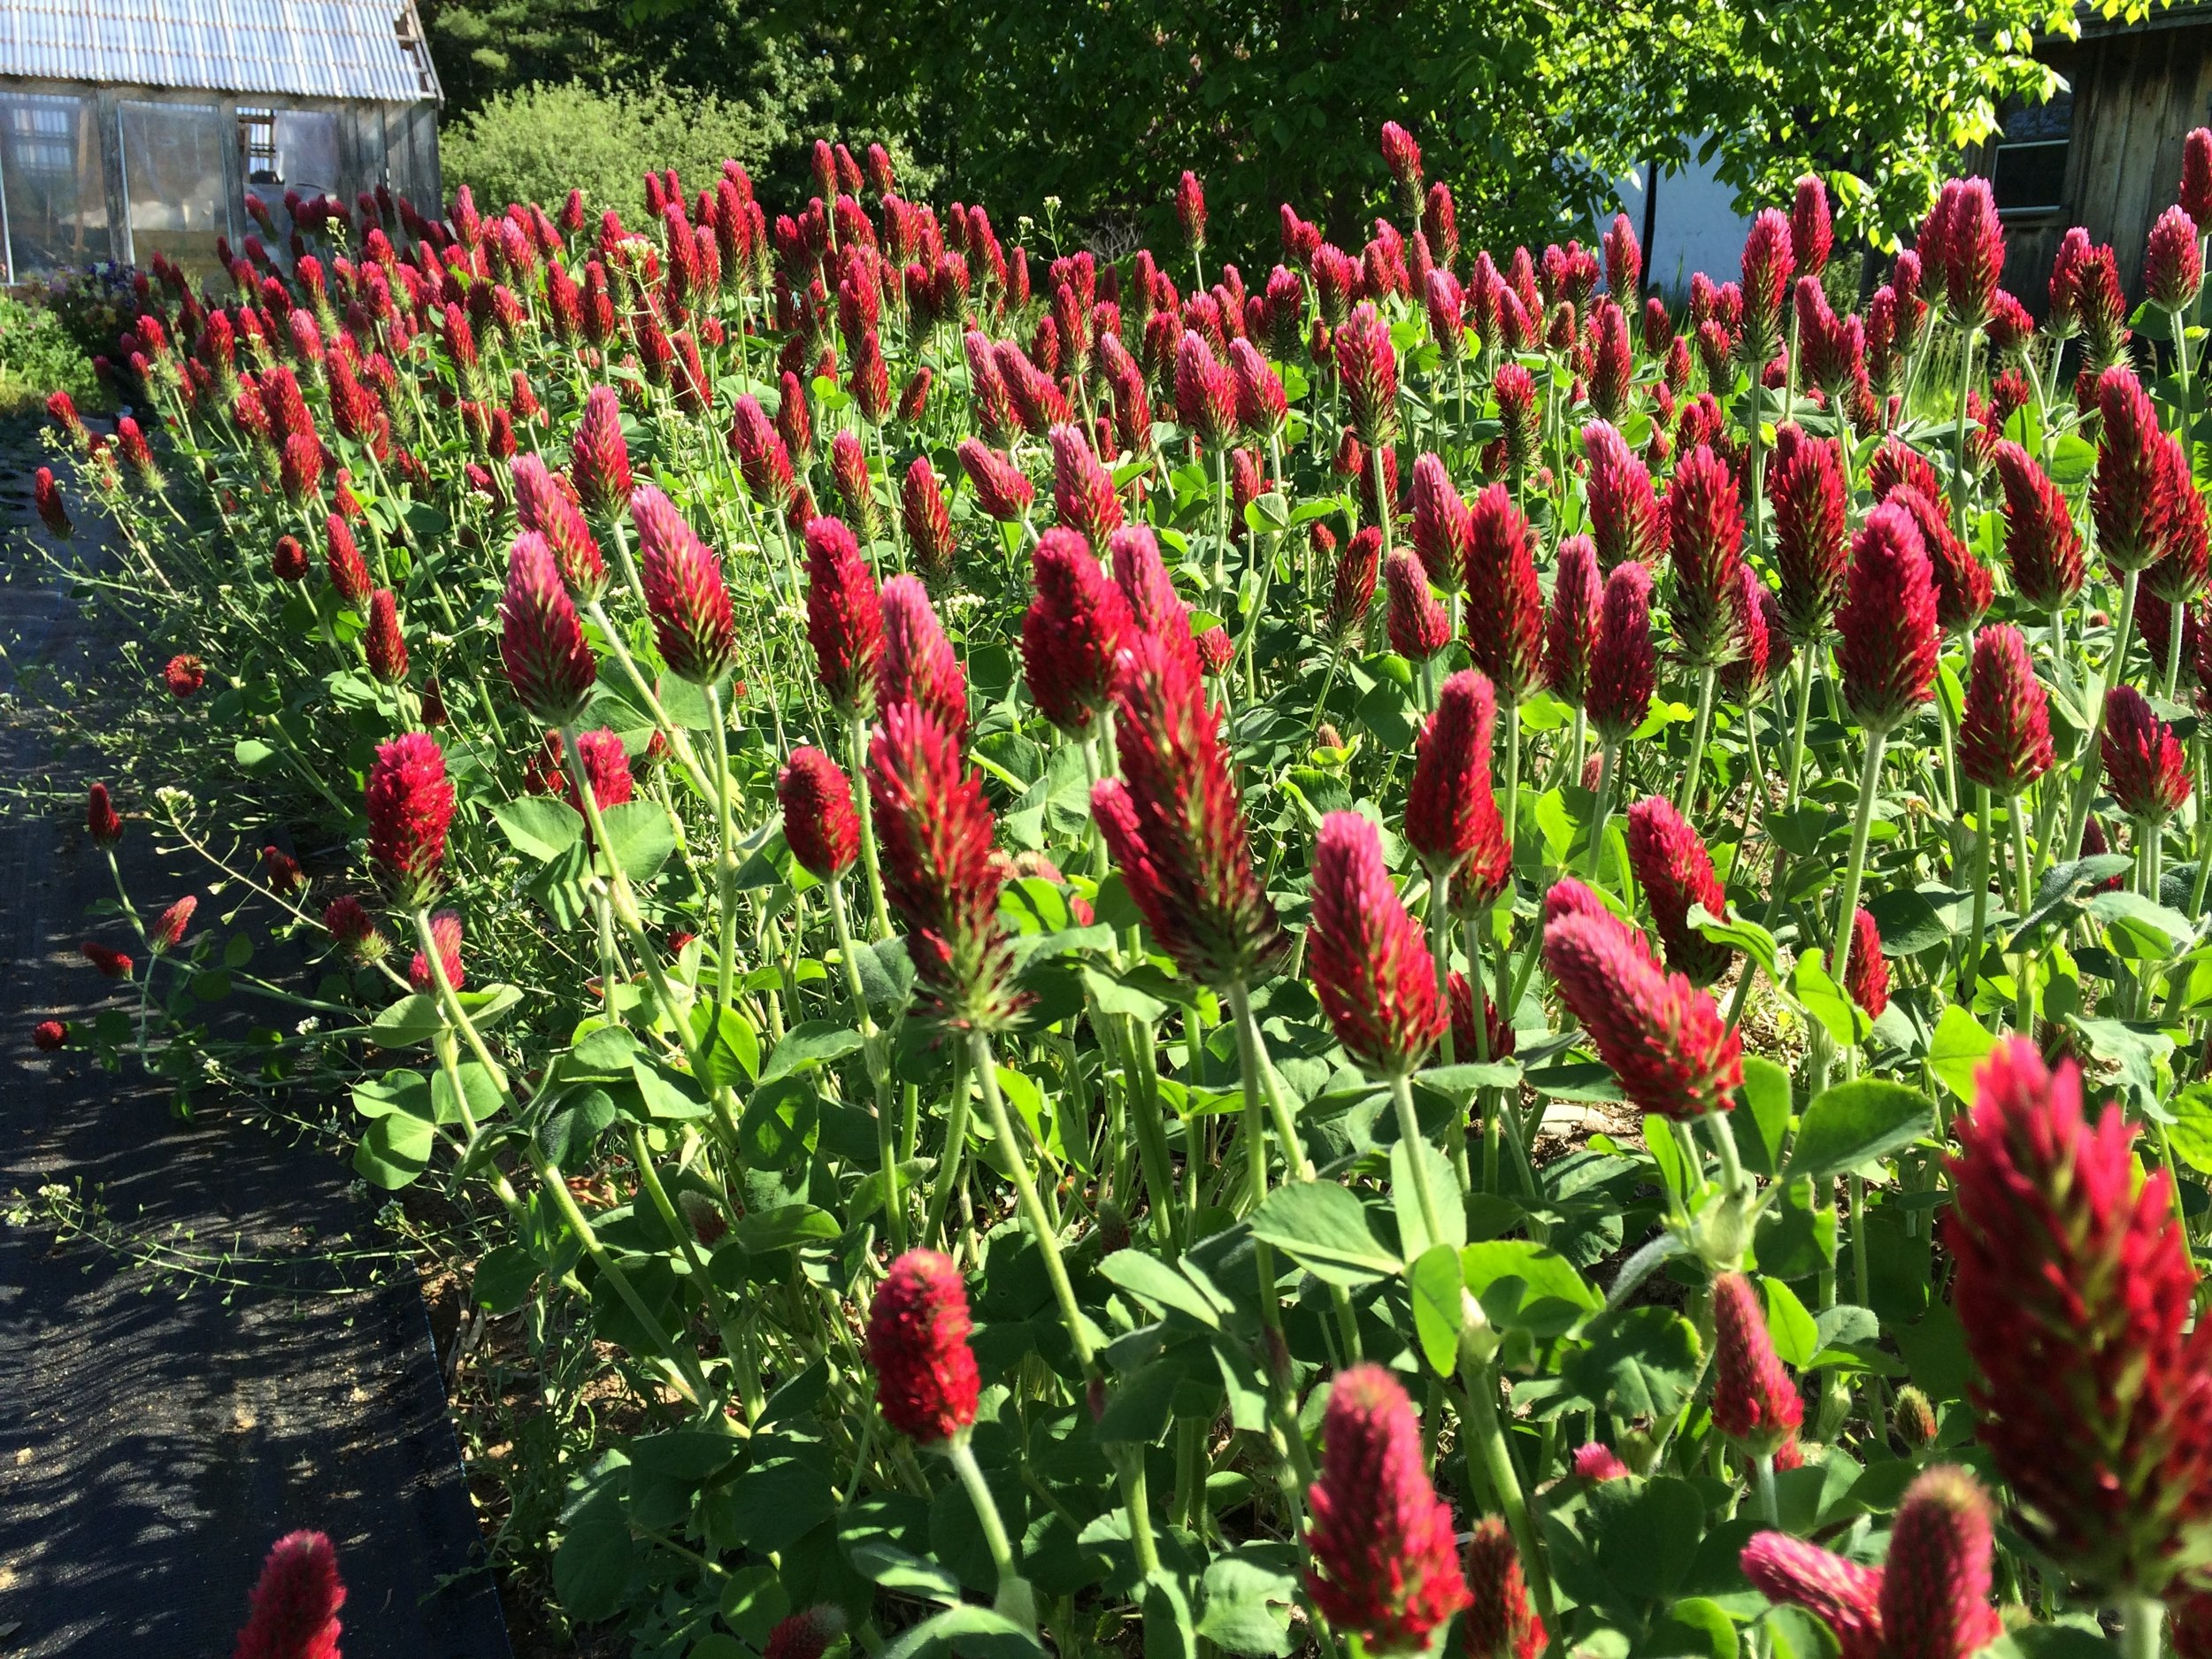 Crimson clover as cover crop fixes nitrogen in the soil and provides great flower forage for beneficial insects and pollinators